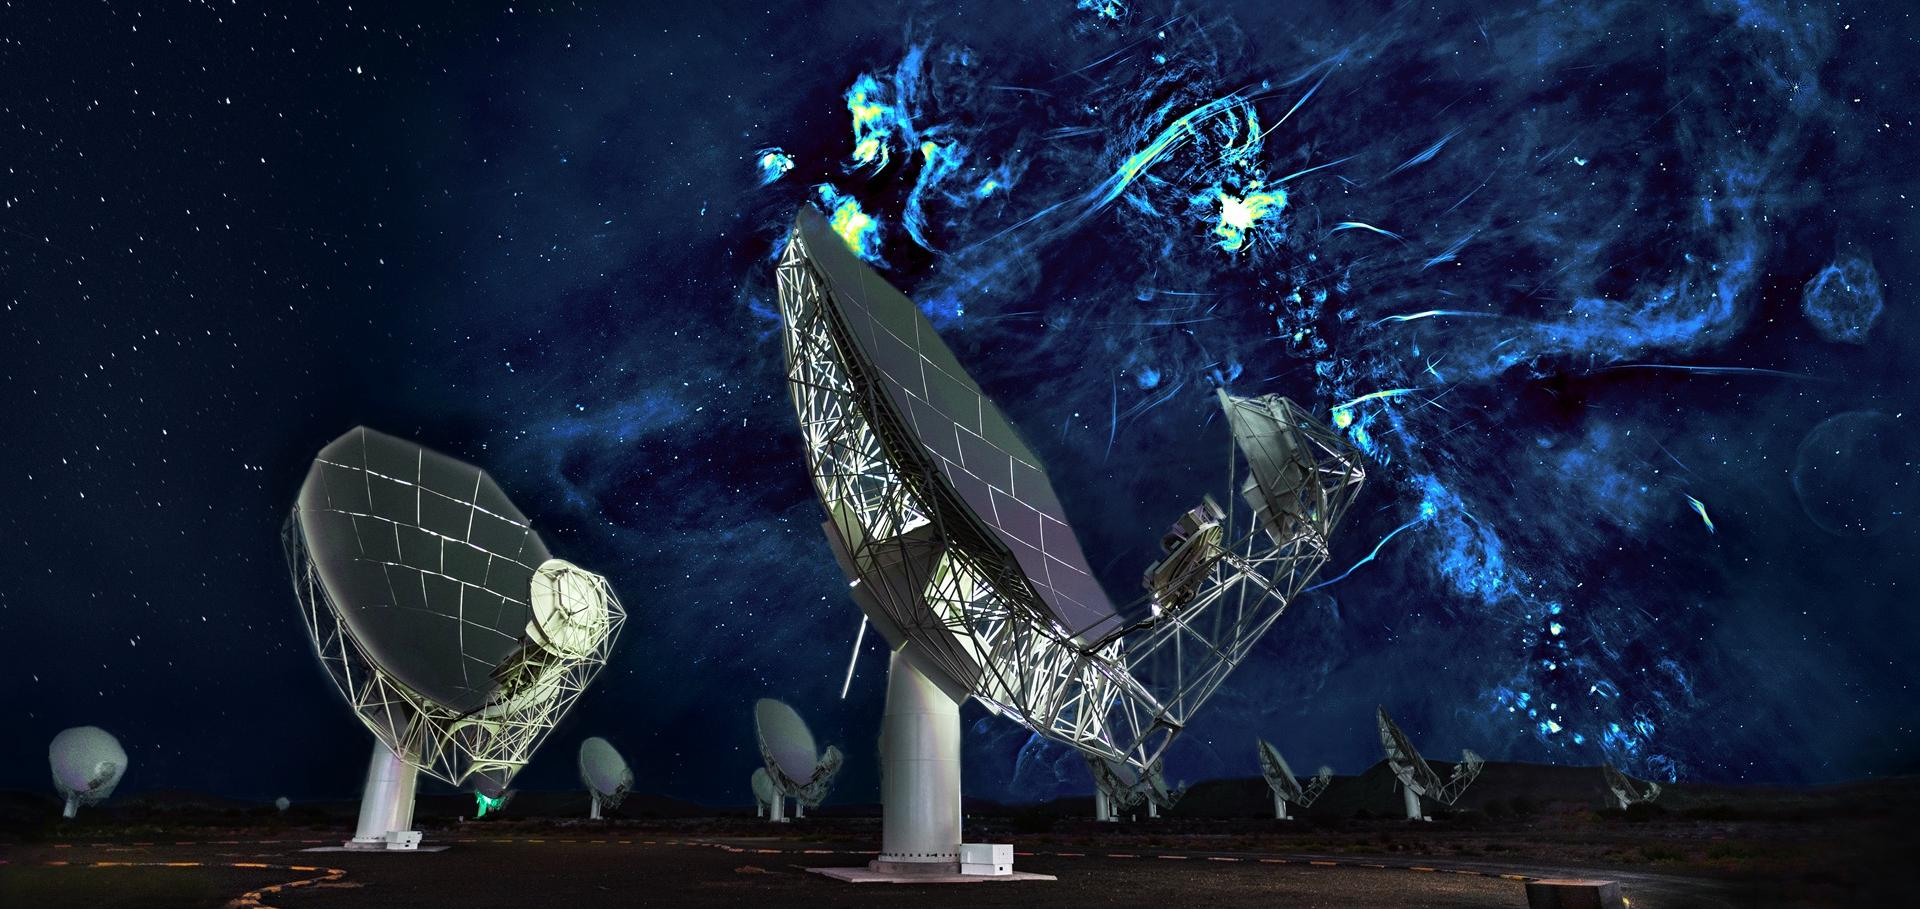 MeerKAT antennas against a backdrop of the Galactic Centre radio bubbles